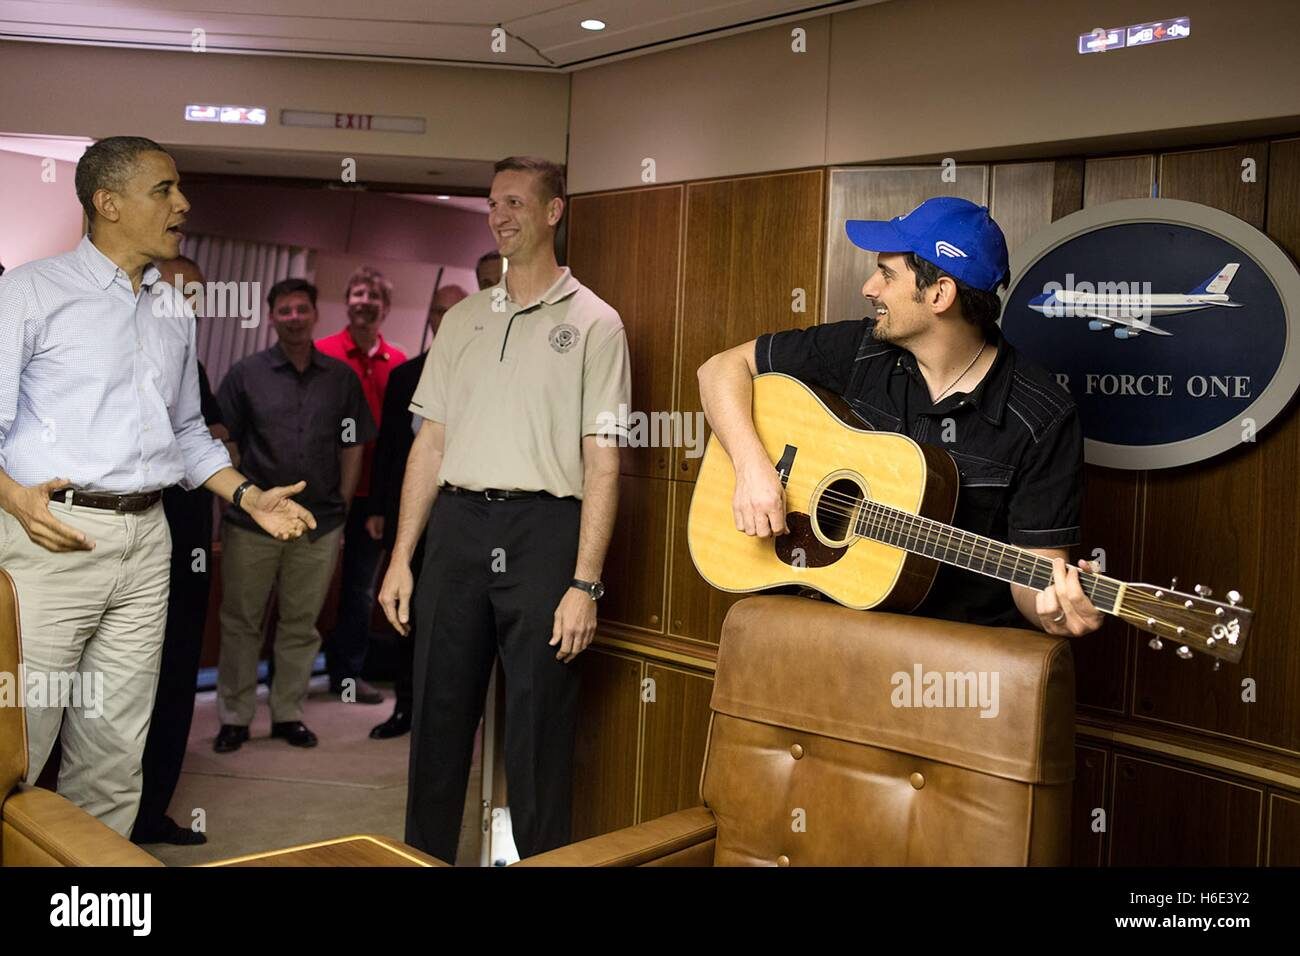 Us president barack obama and country singer brad paisley sing us president barack obama and country singer brad paisley sing presidential flight attendants superintendent rob nation a happy birthday aboard air force m4hsunfo